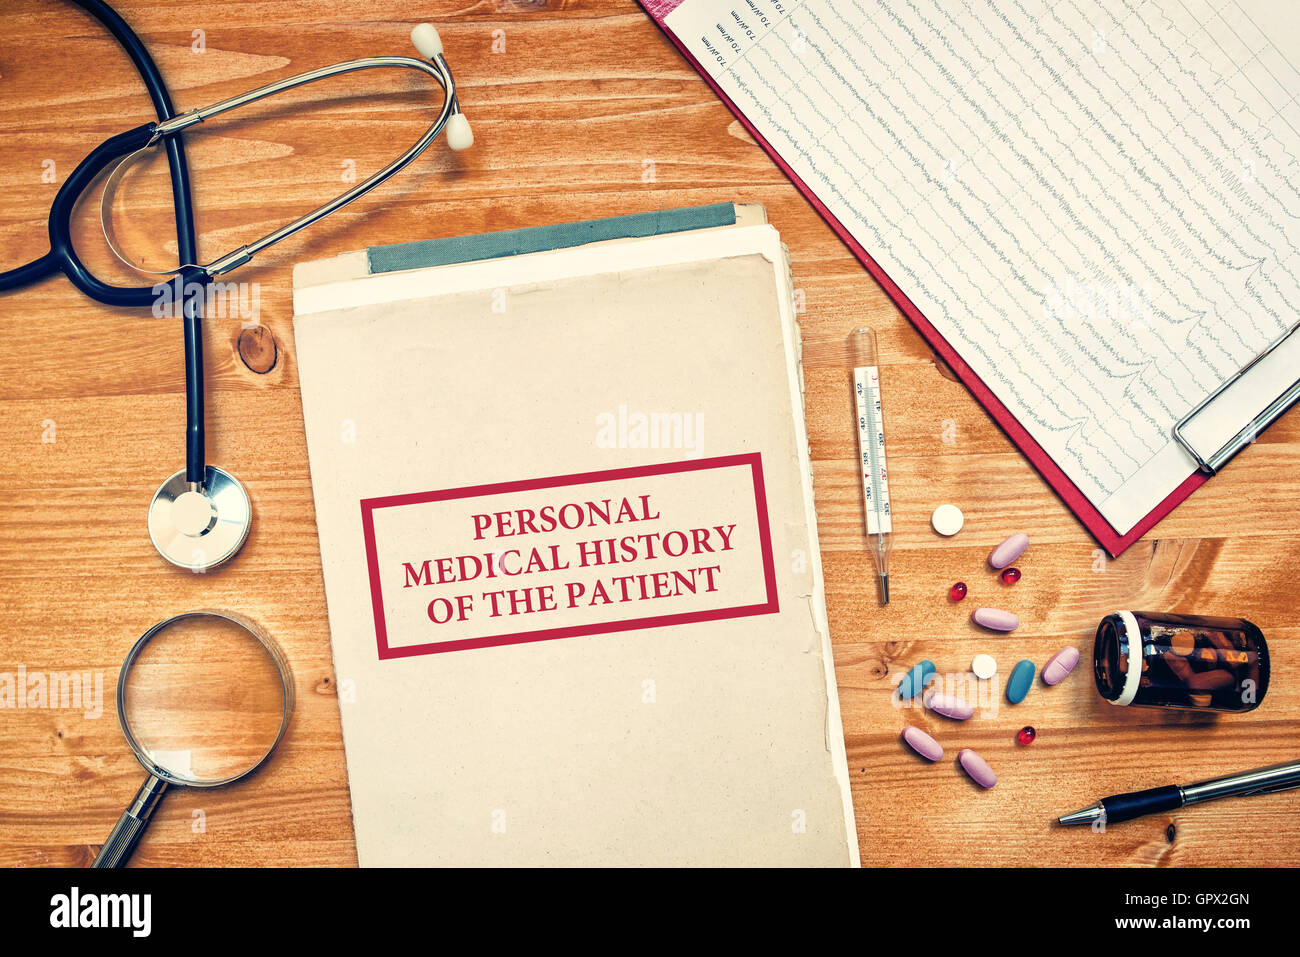 Personal medical history of the patient, healthcare concept with doctor's work space top view - Stock Image